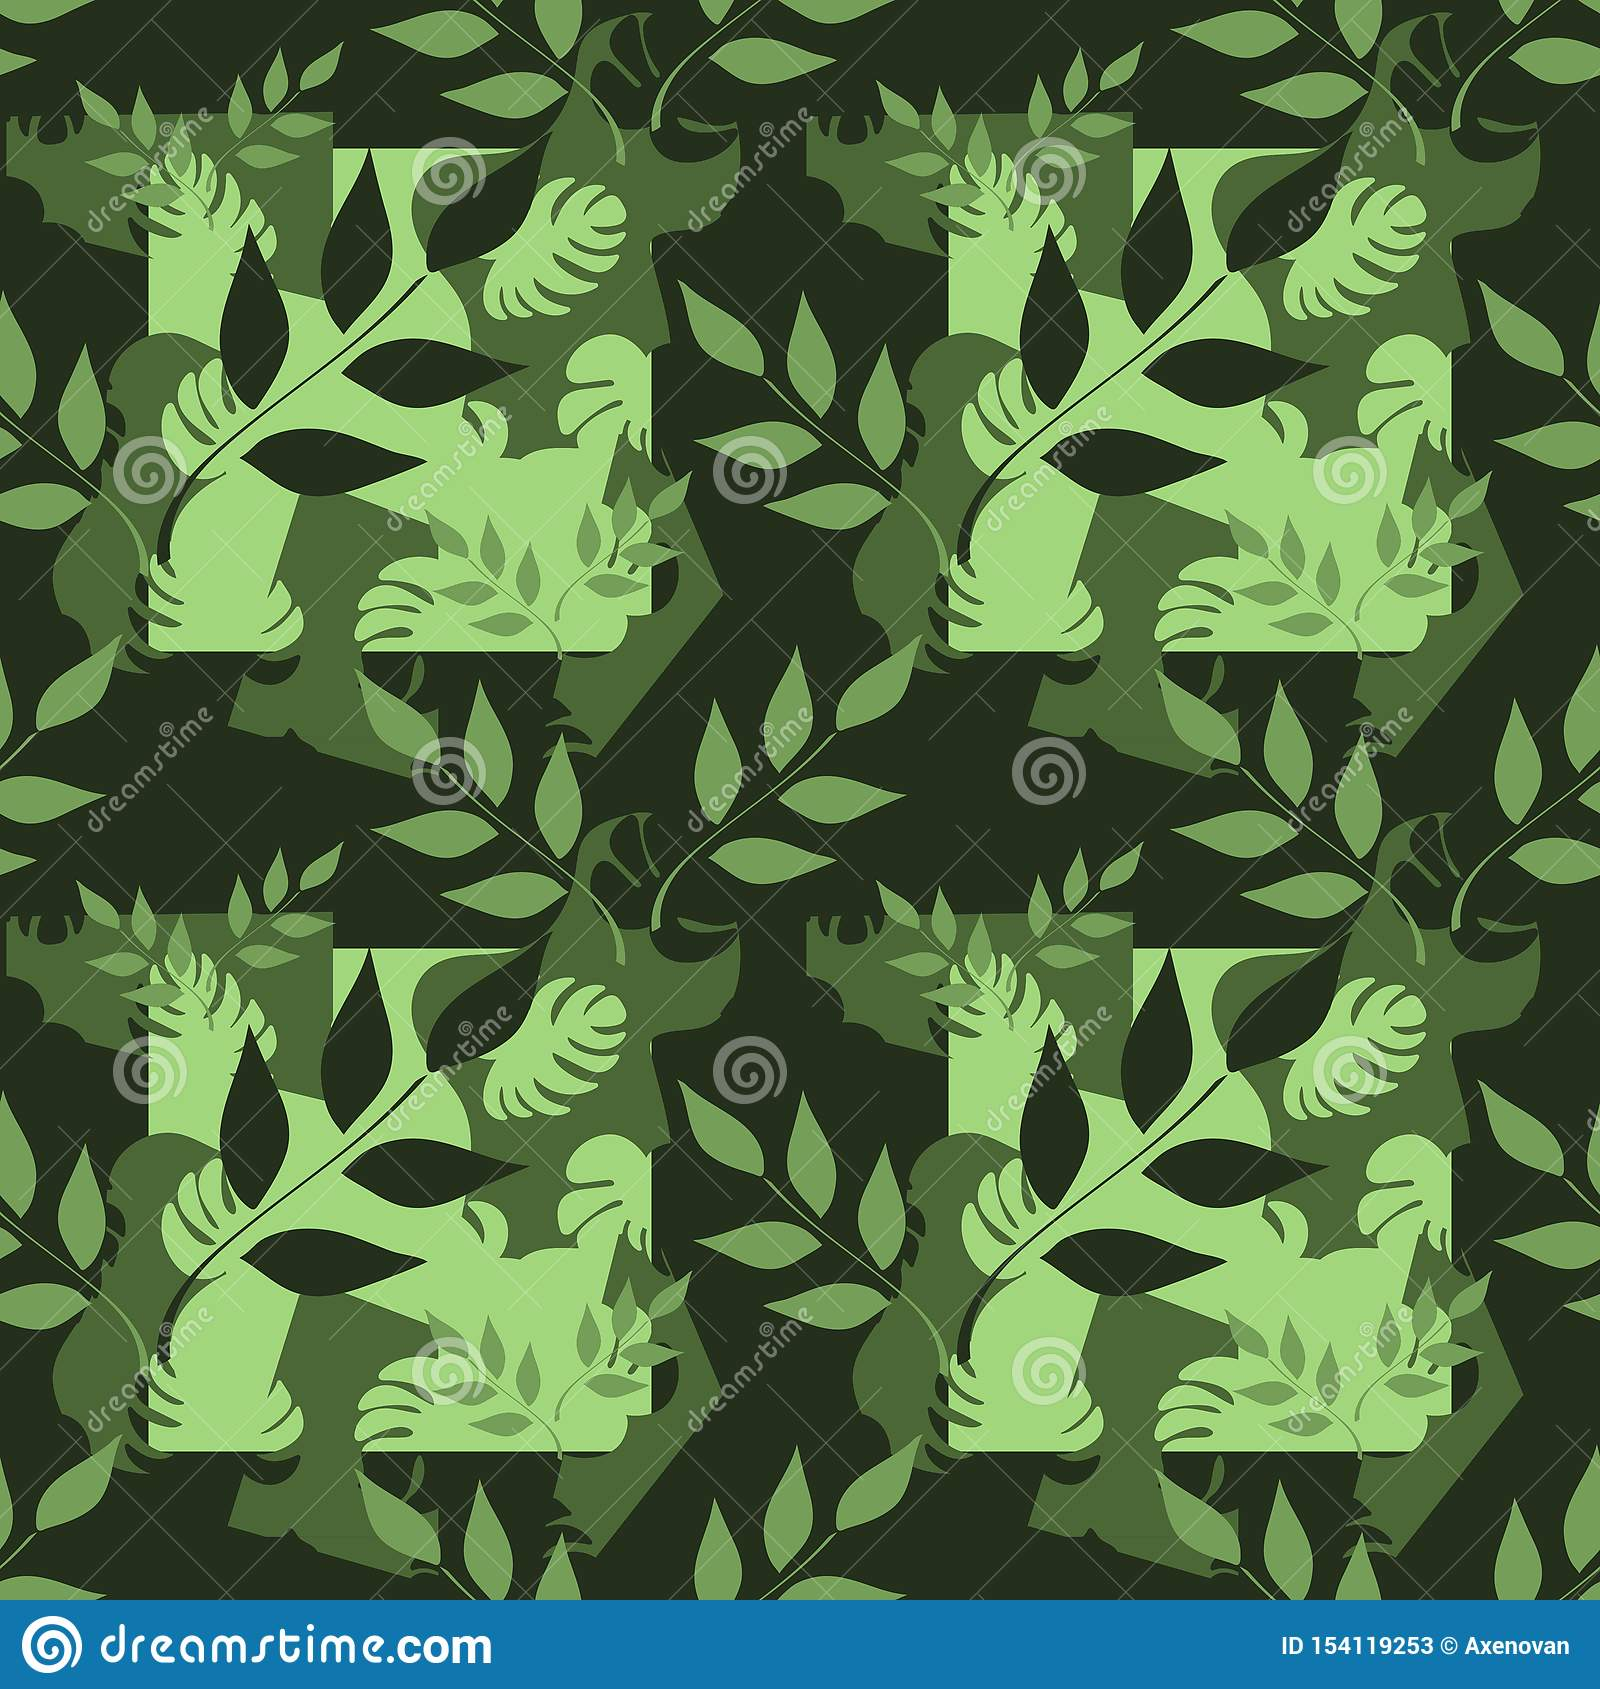 Vector seamless pattern, branches with leaves, tropical leaves on dark background. Abstract spots. Hand drawn illustration.